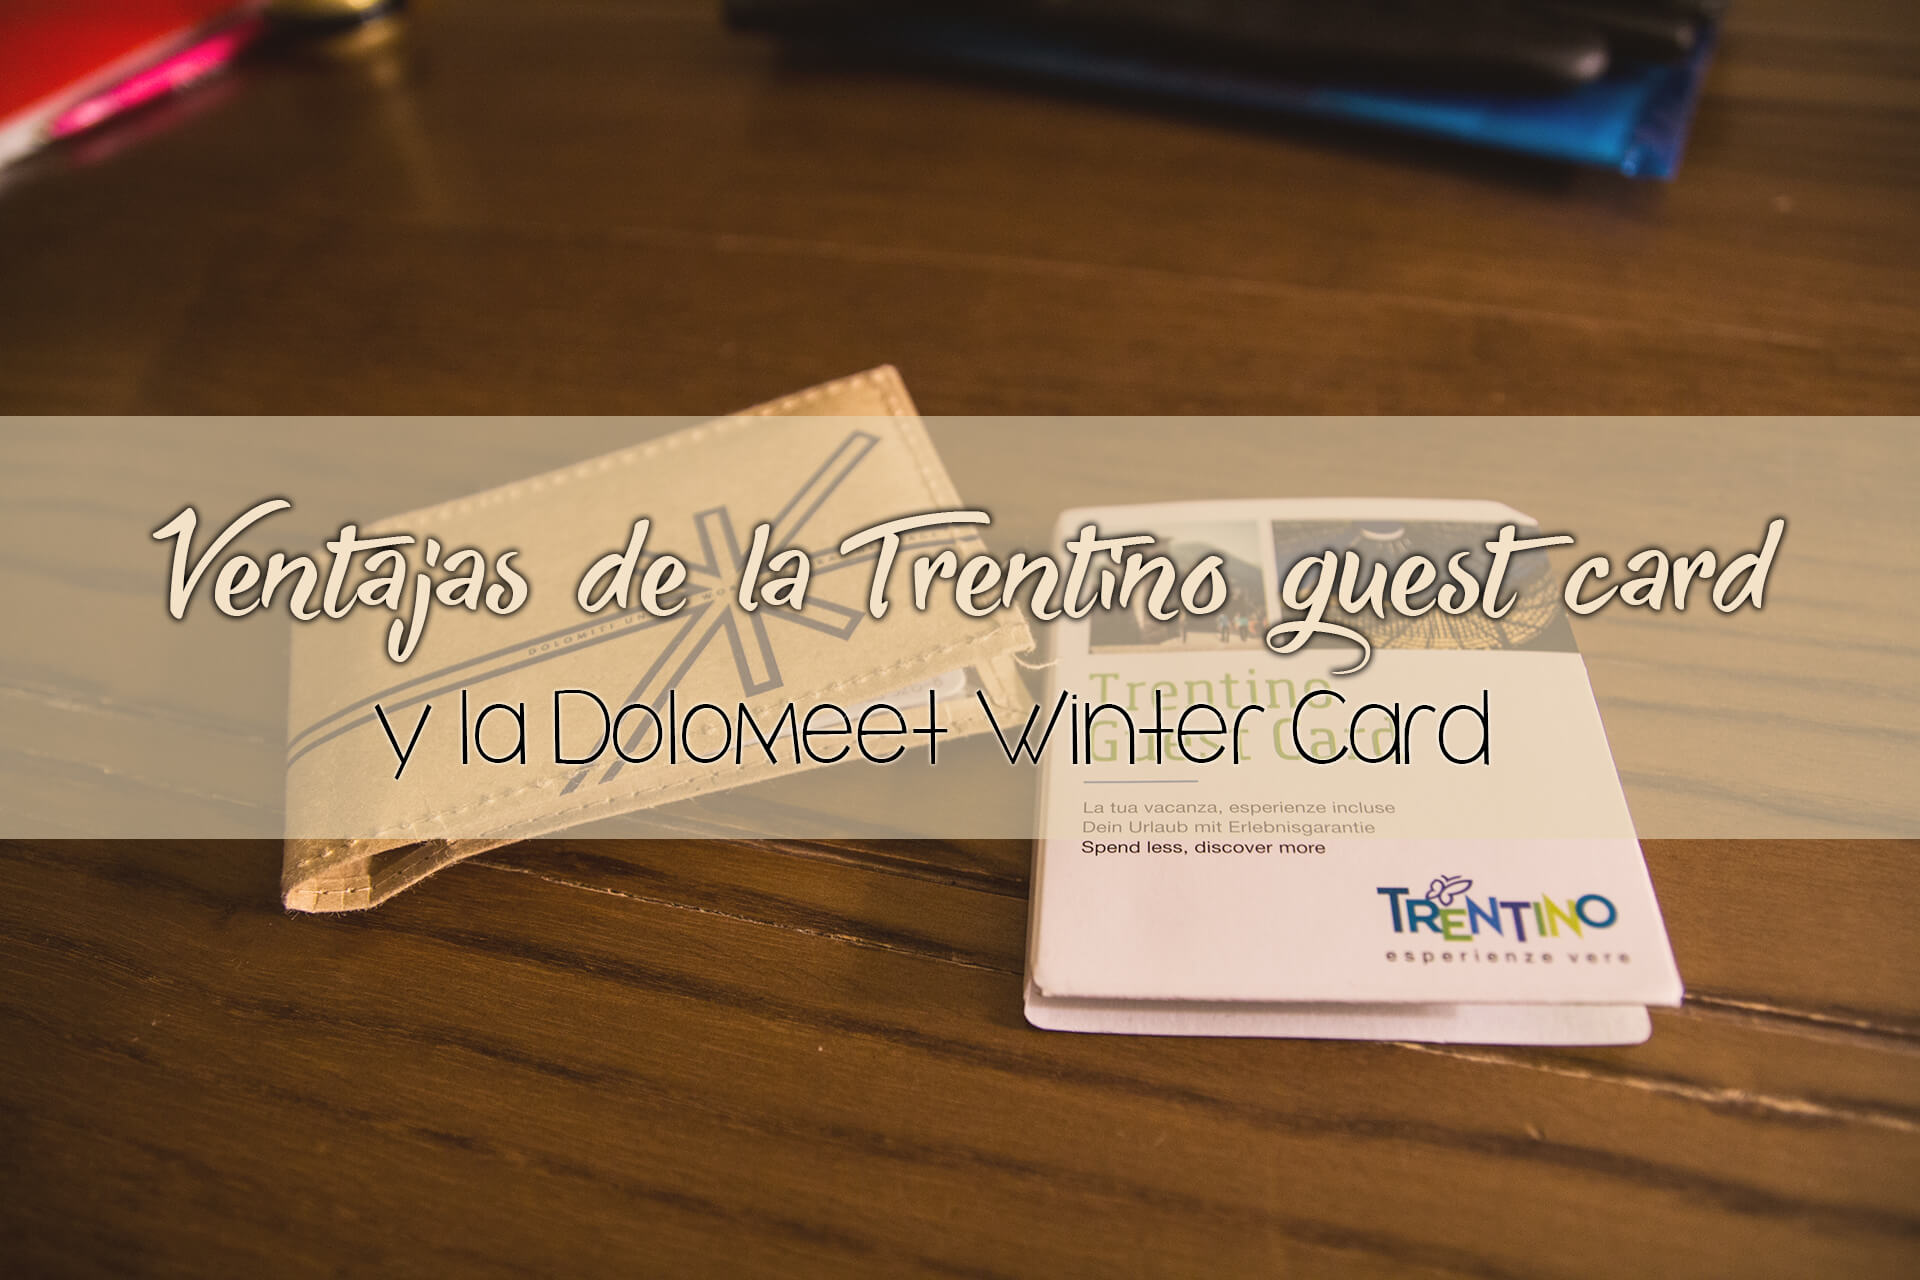 trentino guest card y dolomeet card